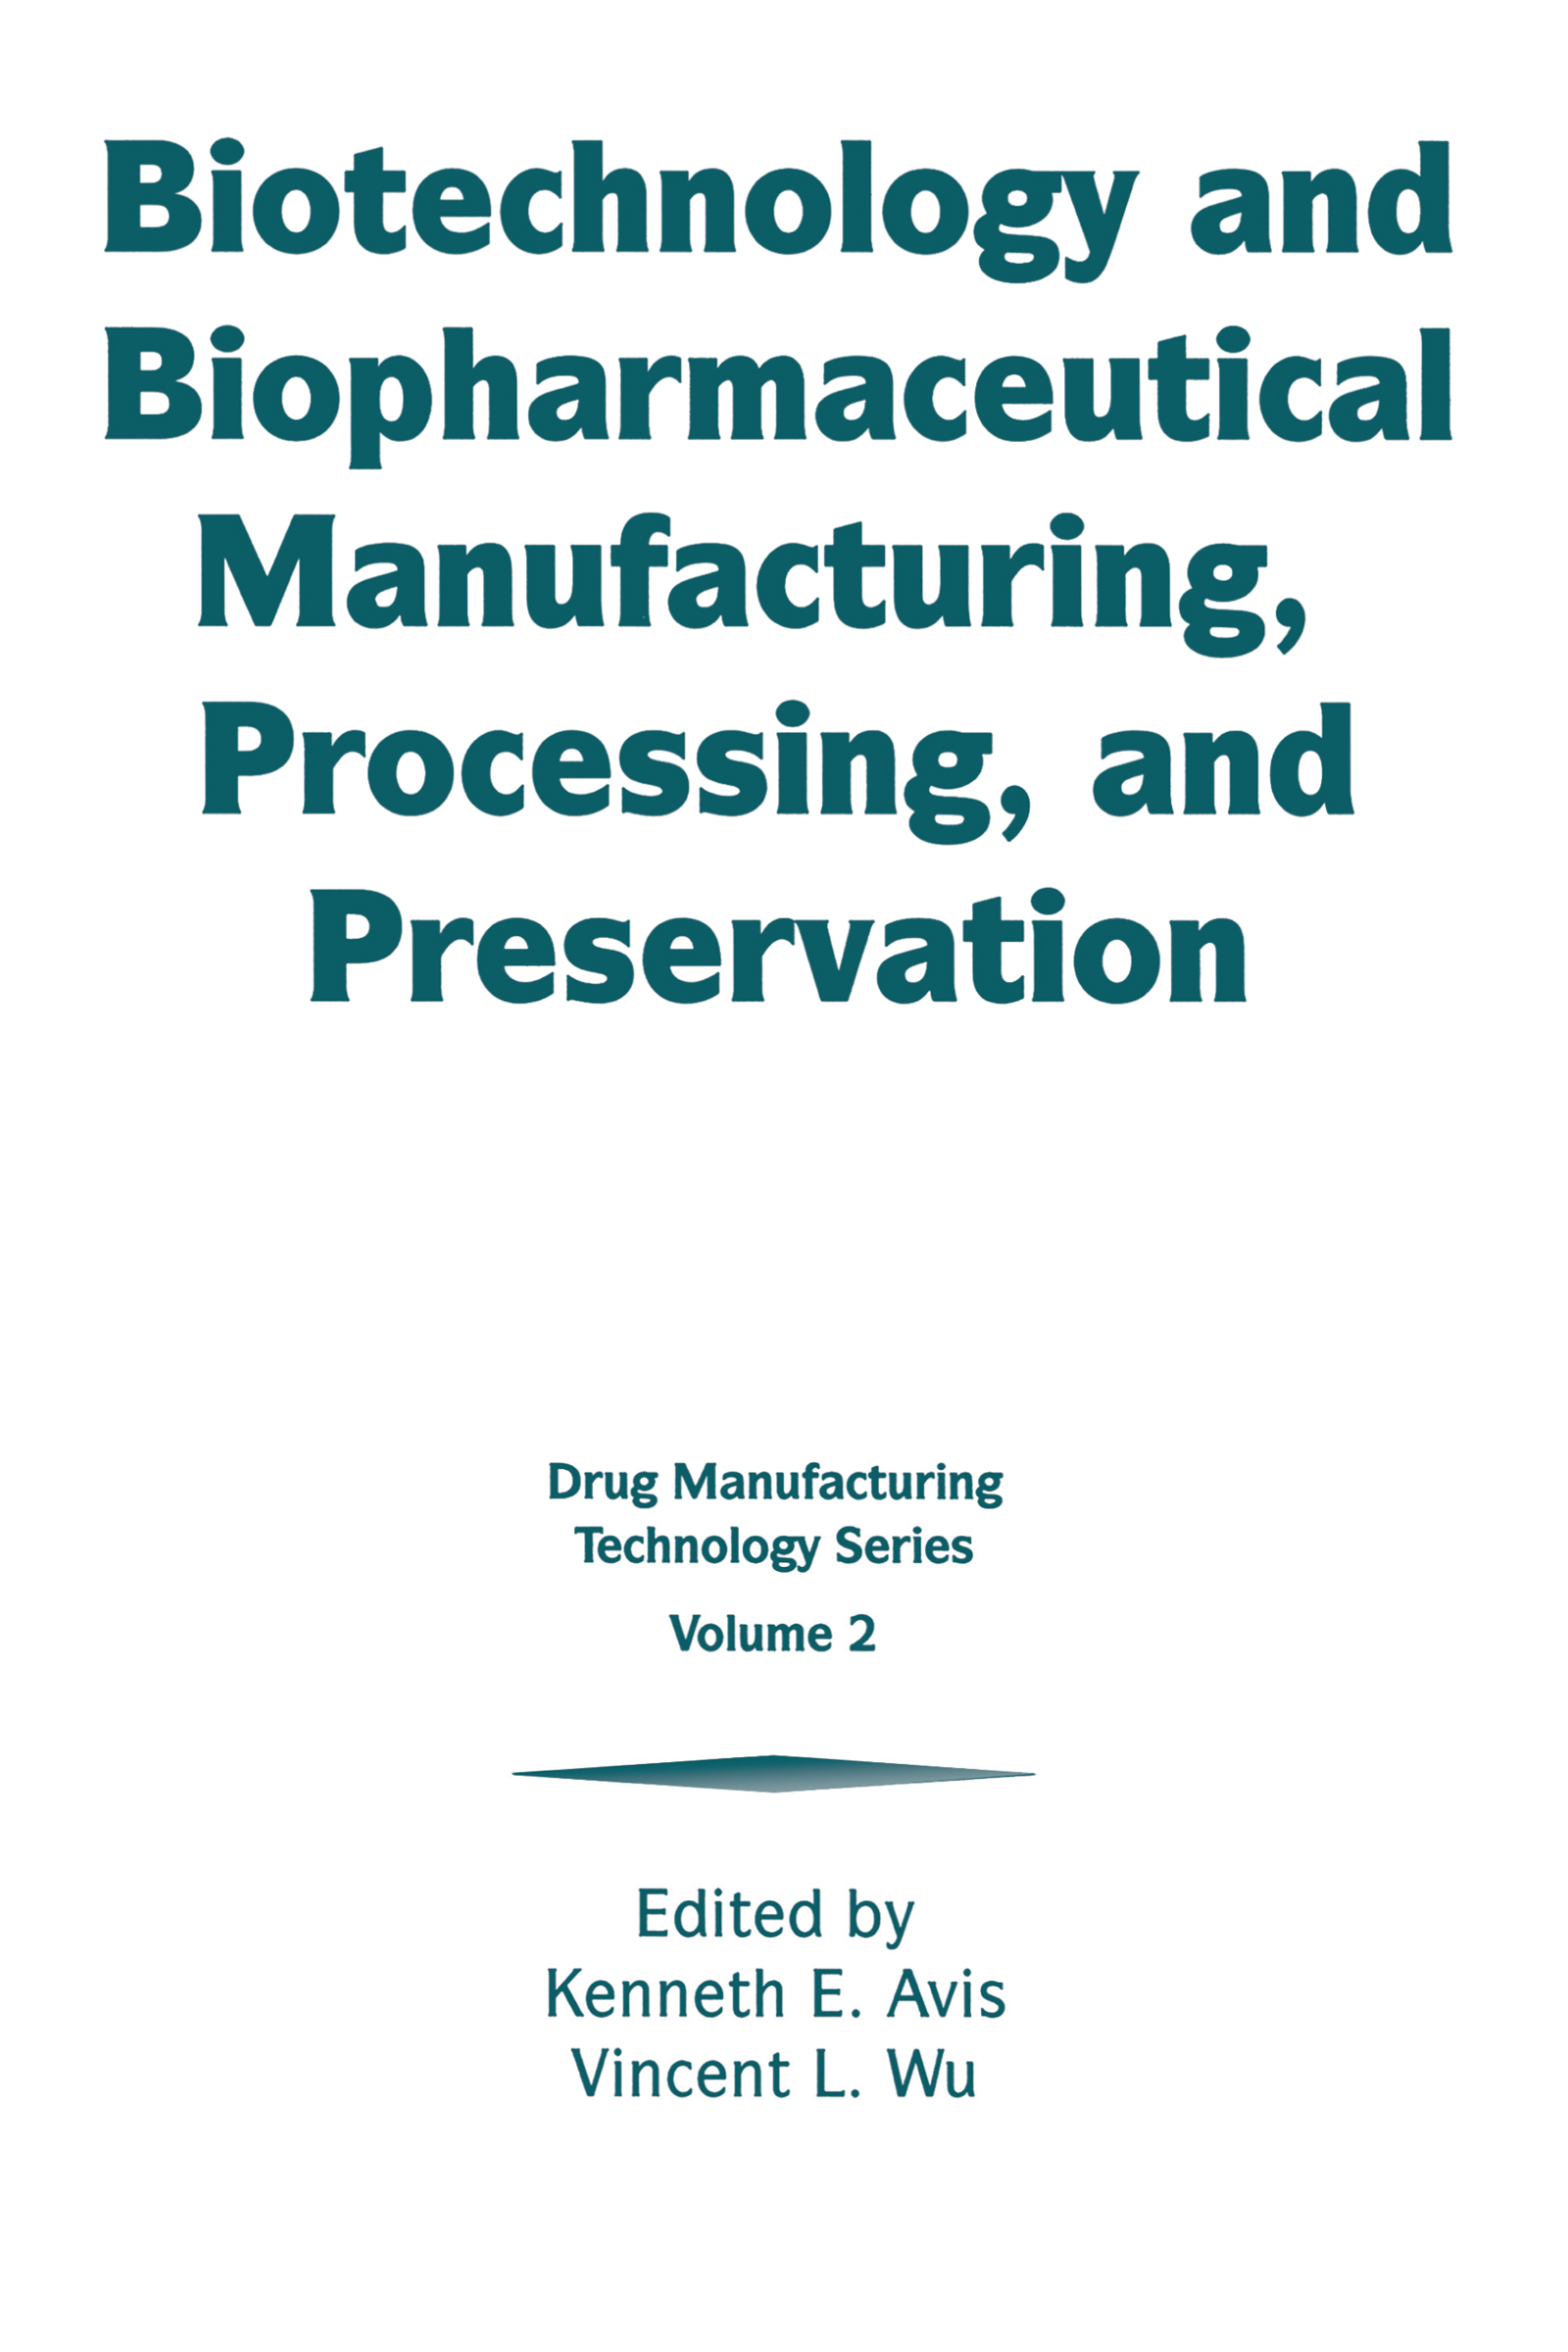 Advances in Blow/Fill/Seal Technology: A Case Study in the Qualification of a Biopharmaceutical Product